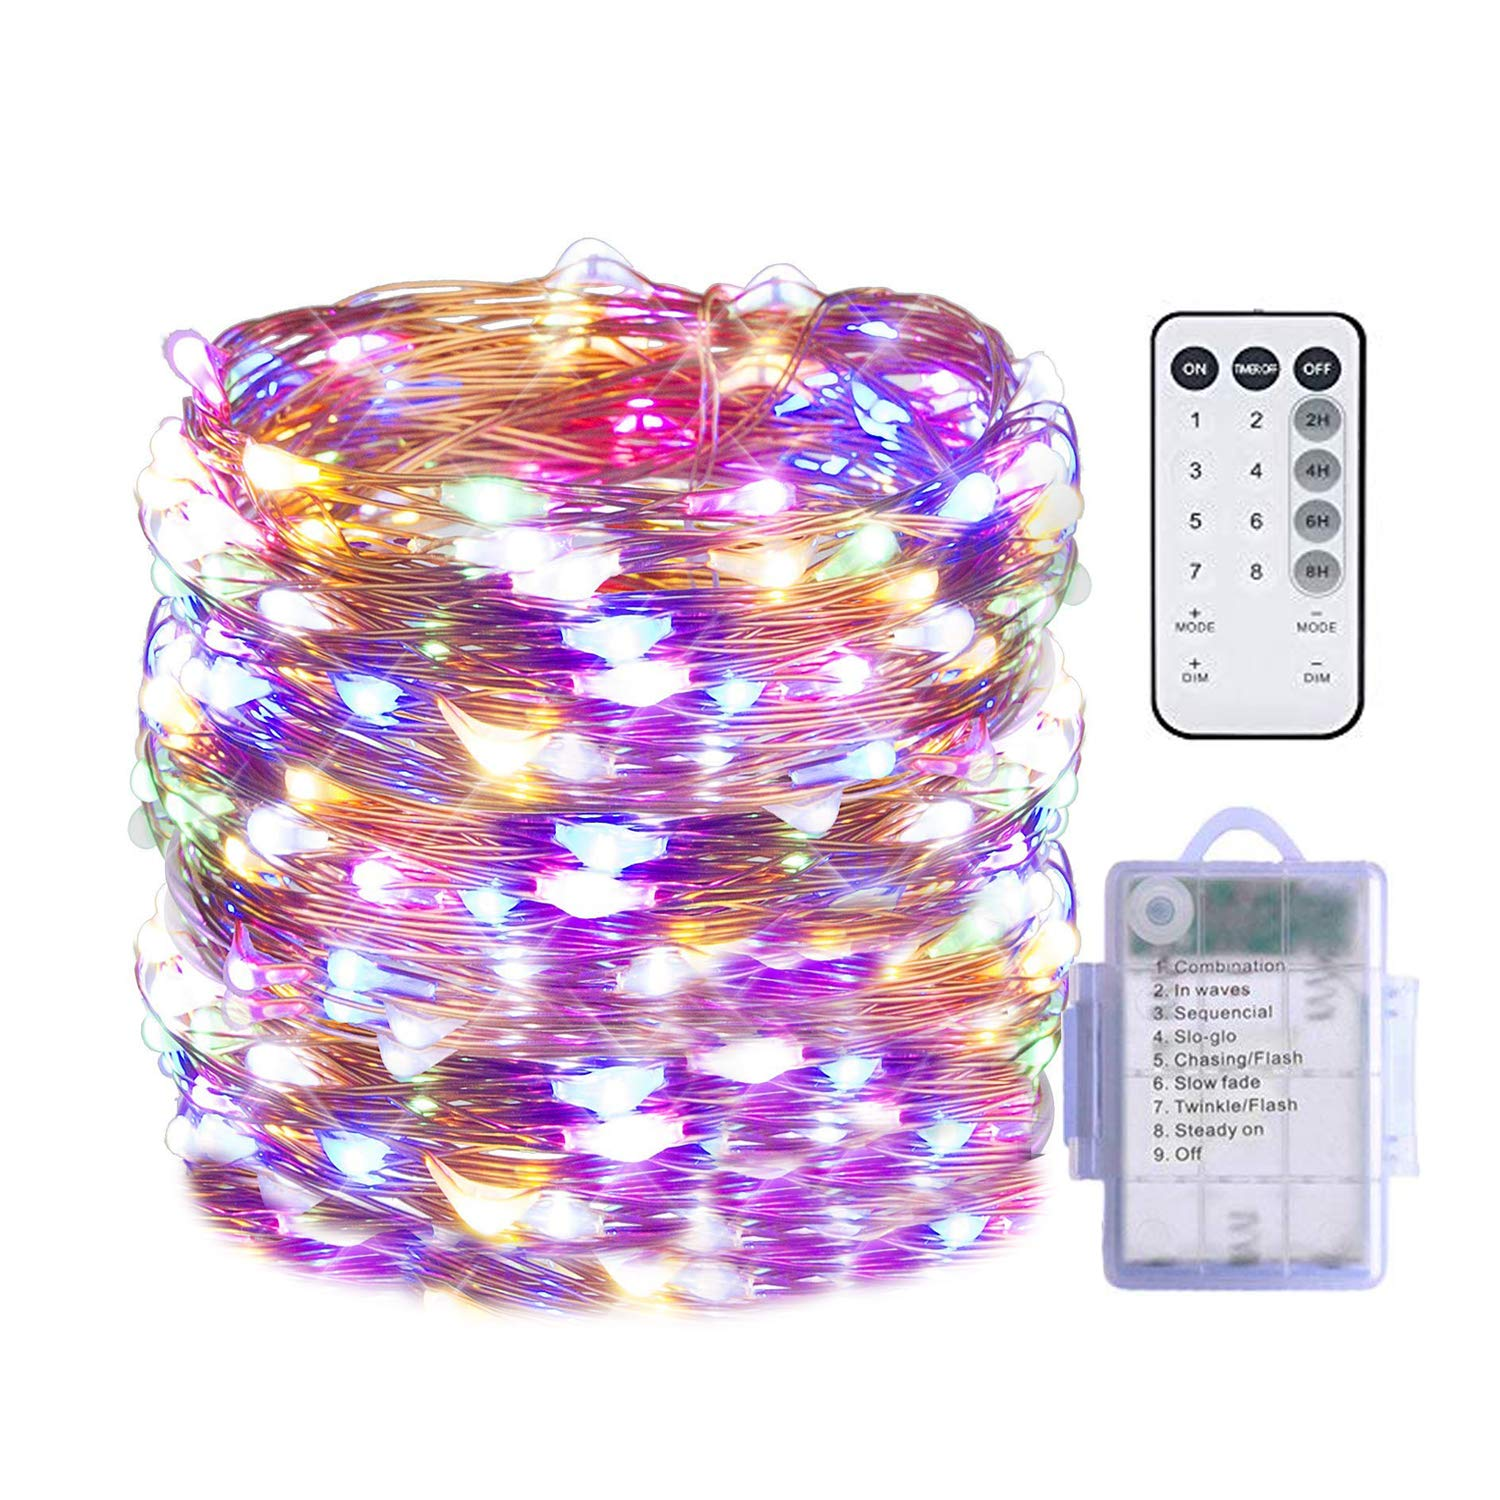 Rarlght 100 LED String Lights Battery Operated, Waterproof Fairy String Lights with Remote Control Timer 8 Modes 33ft Copper Wire Christmas Lights (Twinkle Lights, Multi Color)